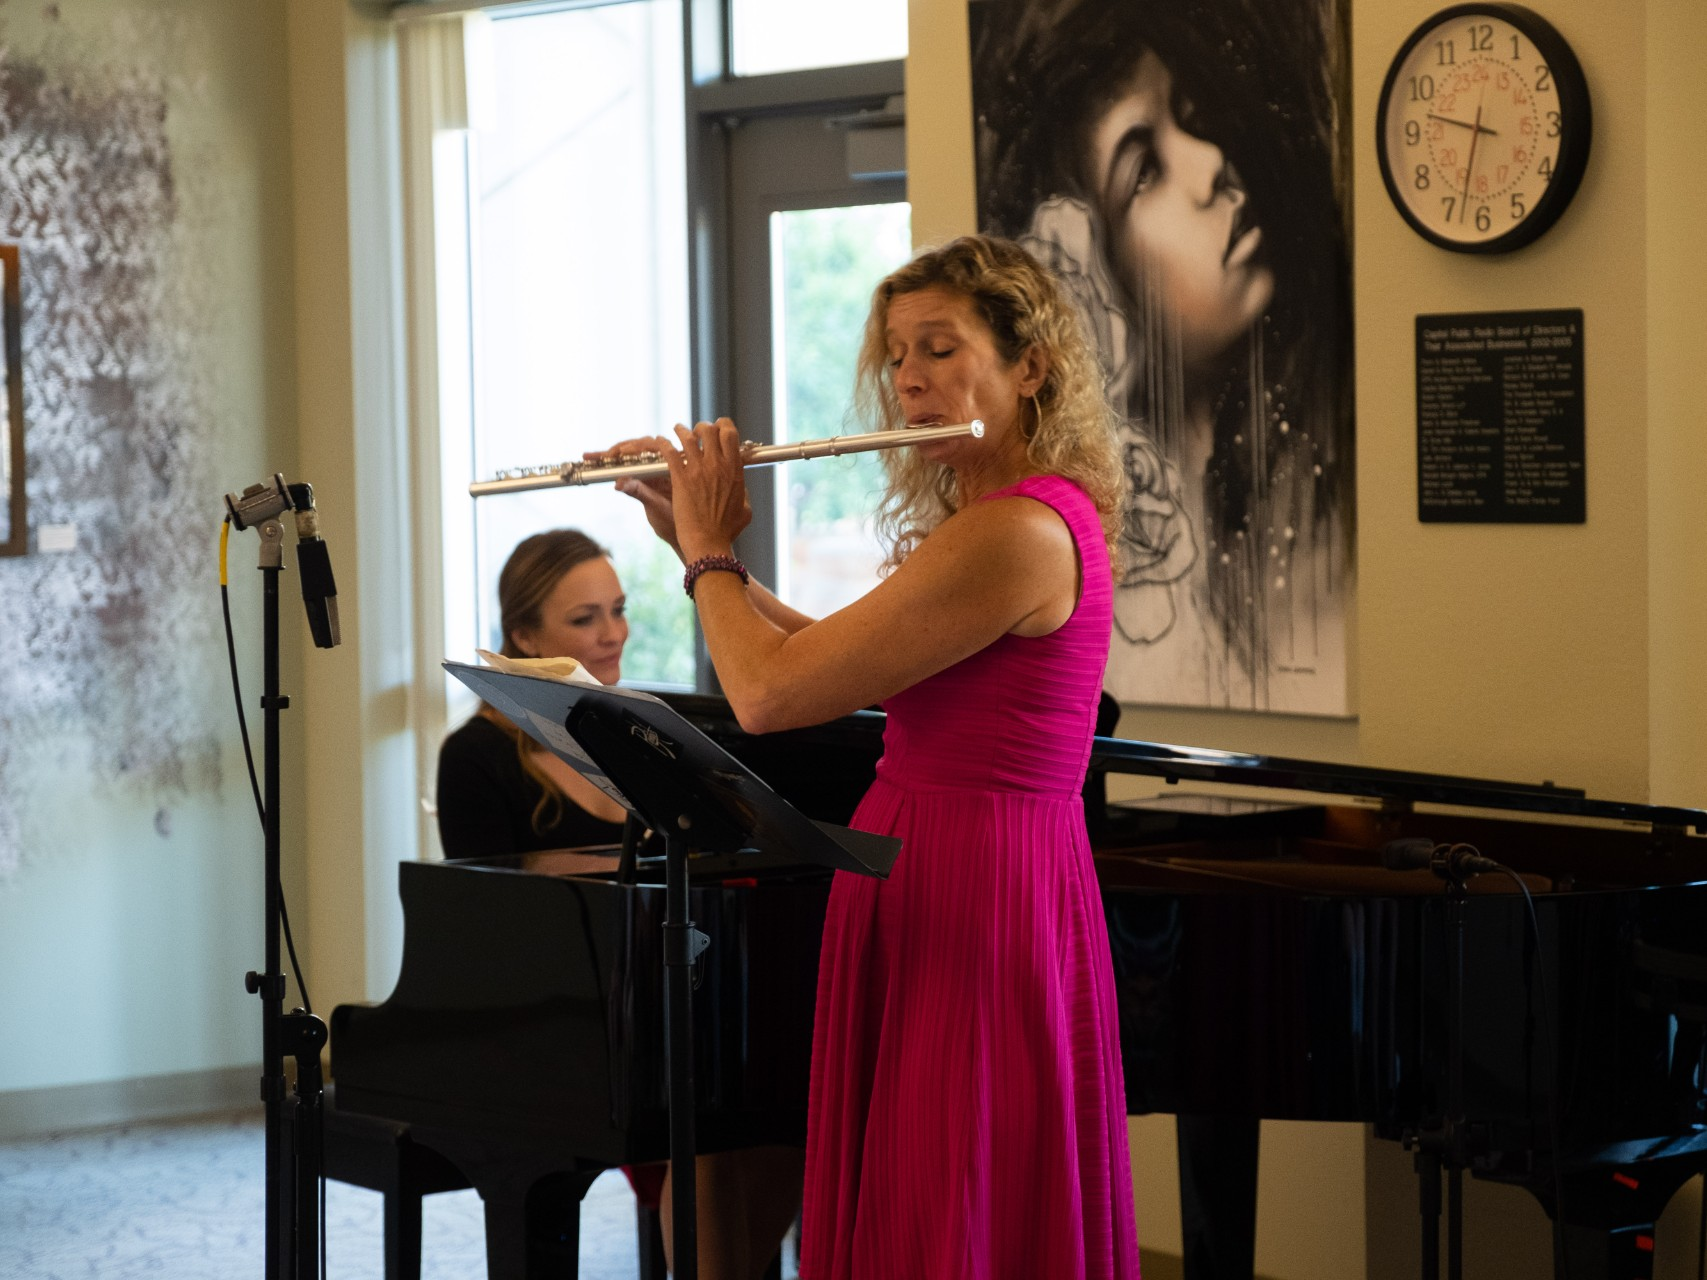 Watch Sunday Baroque Host Suzanne Bona's Visit To CapRadio And Performance With Jennifer Reason